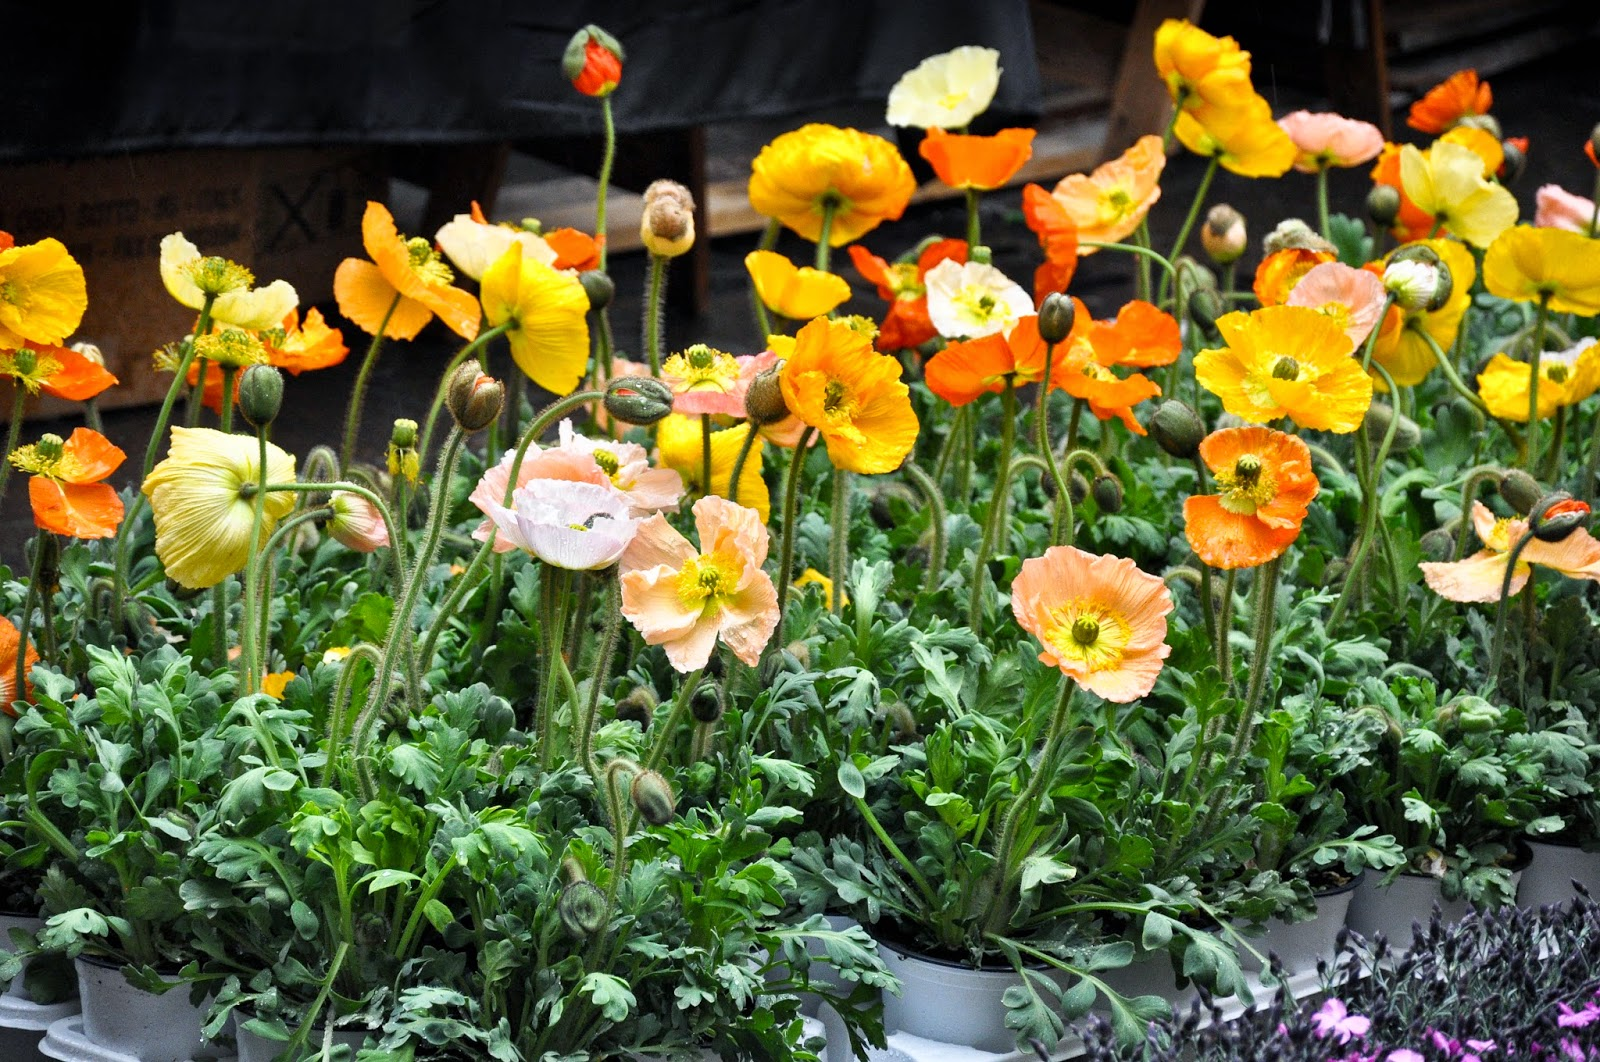 Orange poppies, 7th Edition of 'Fiori, colori, e...' - Floriculture market show, Vicenza, Italy